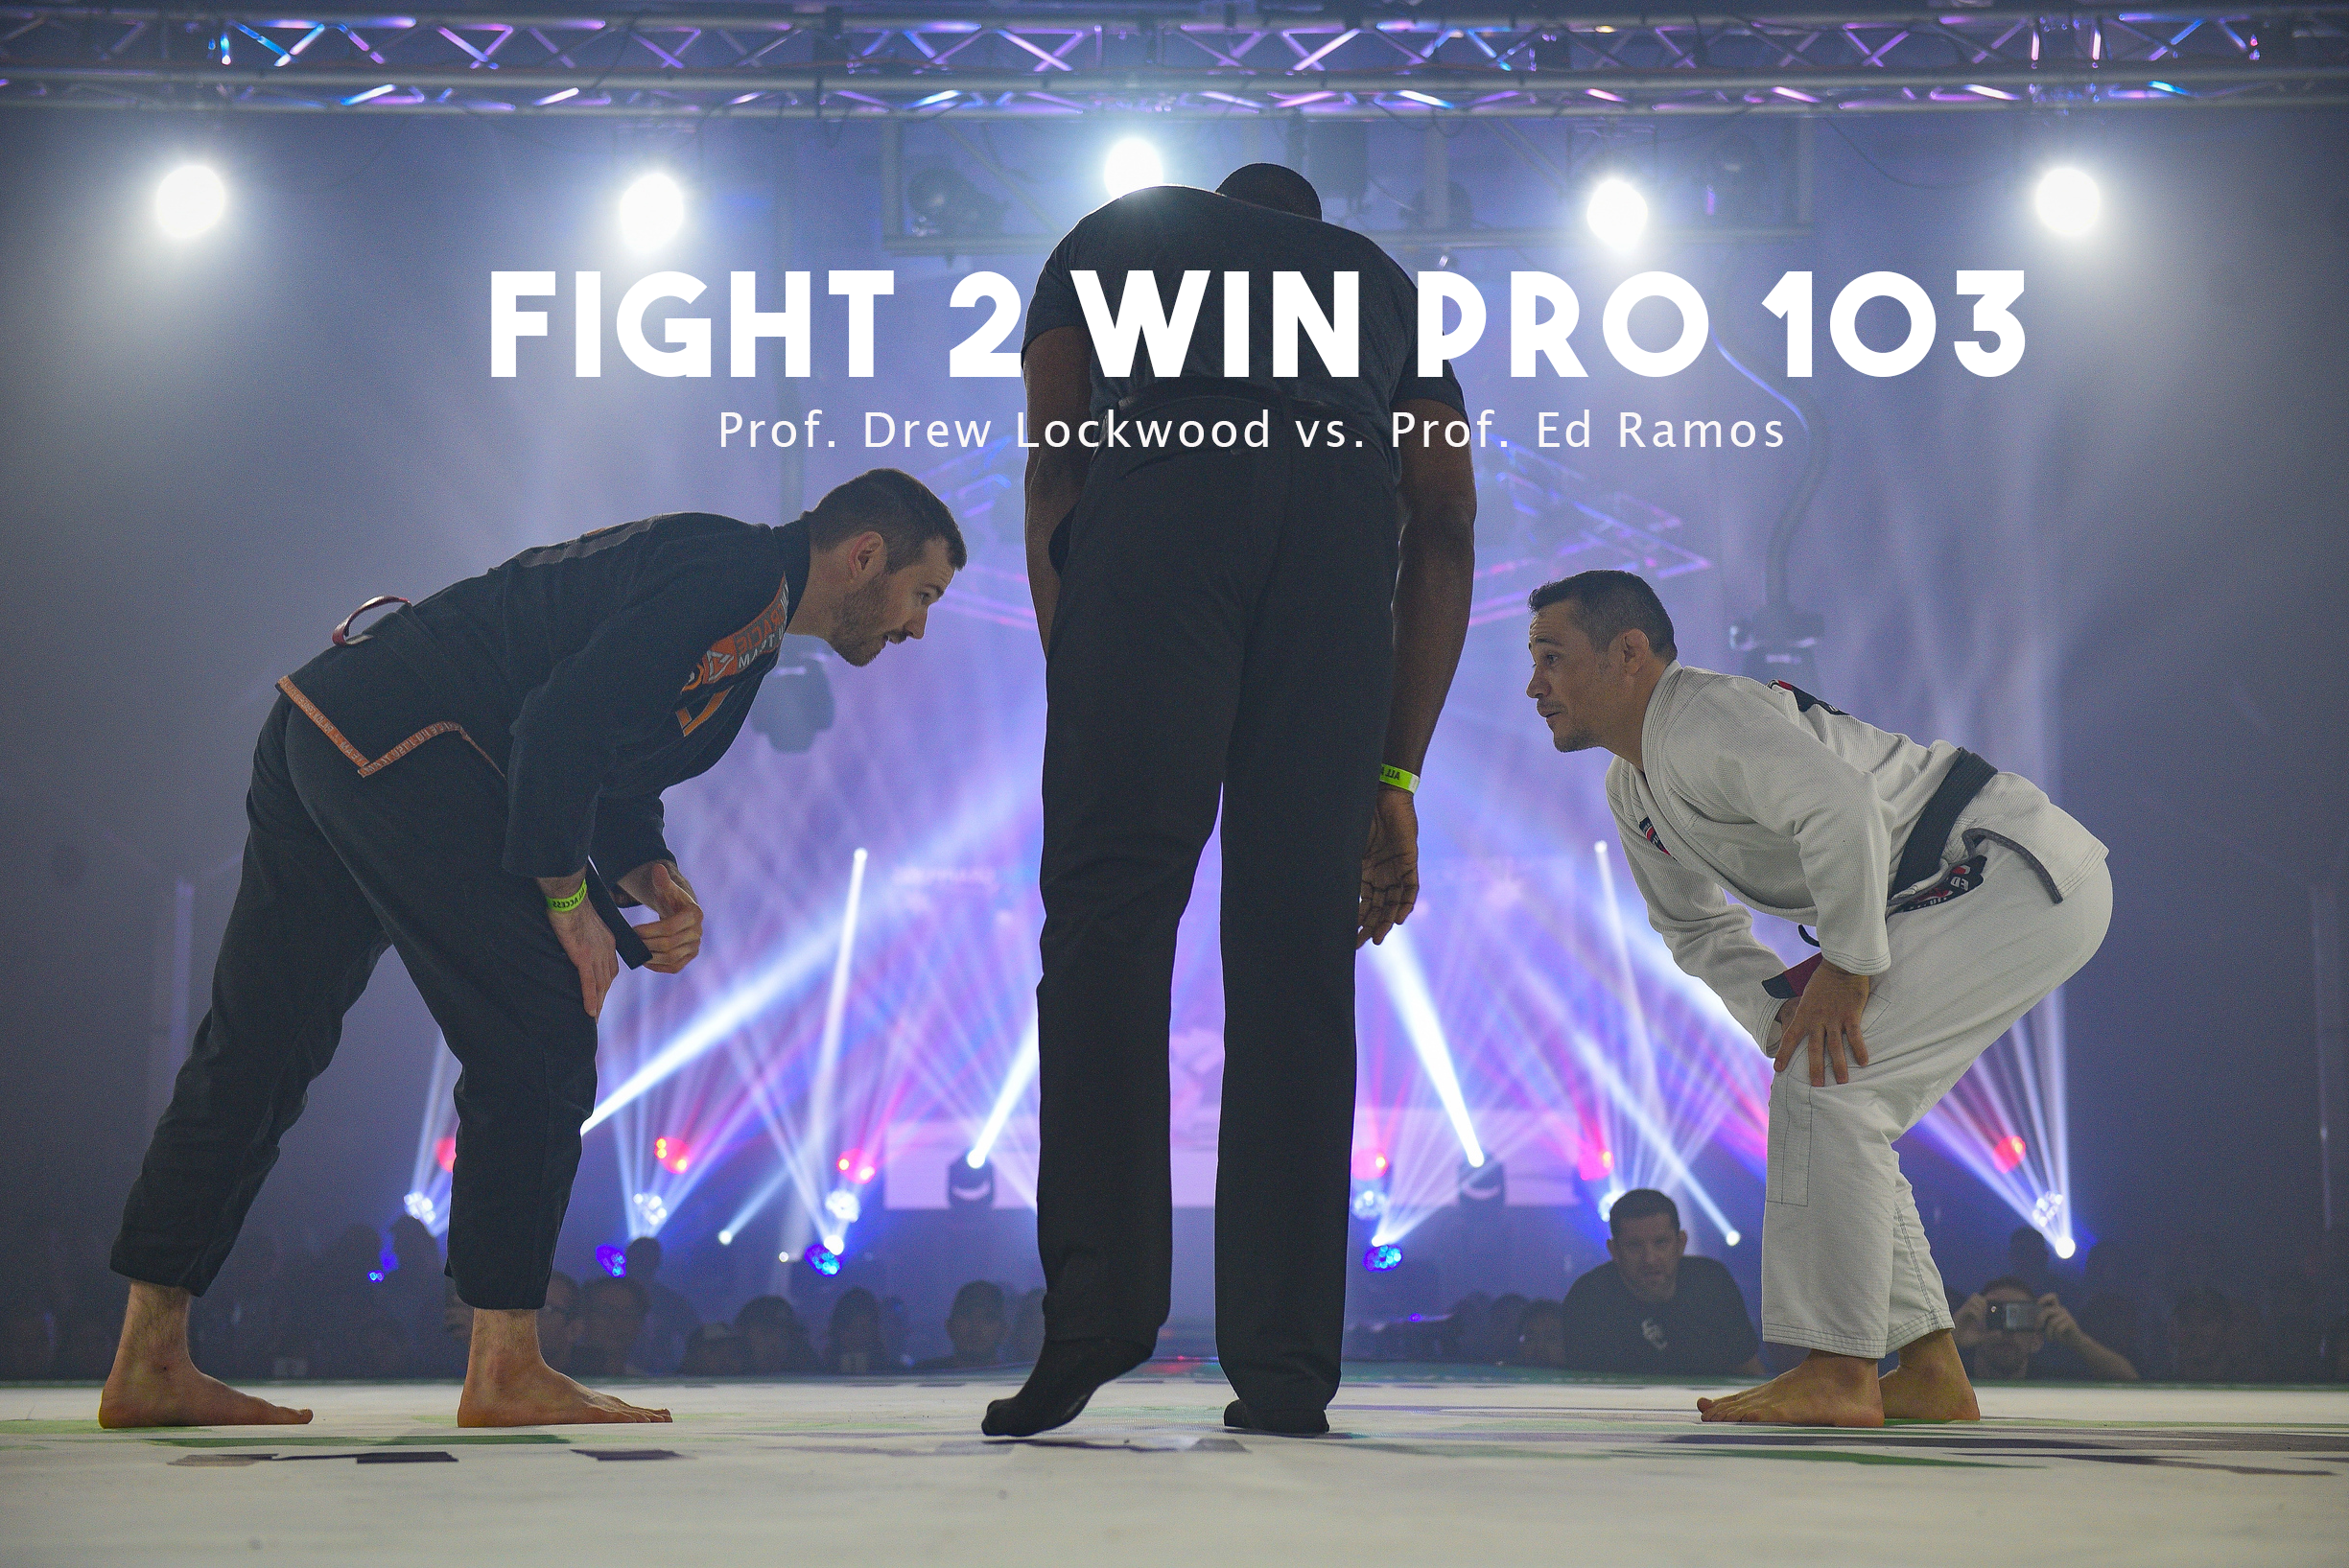 March 1, 2019  Fight 2 Win 103 - Prof. Drew Lockwood vs. Prof, Ed Ramos  Read Prof. Drew's thoughts before the fight at  Fight2WinPro.com